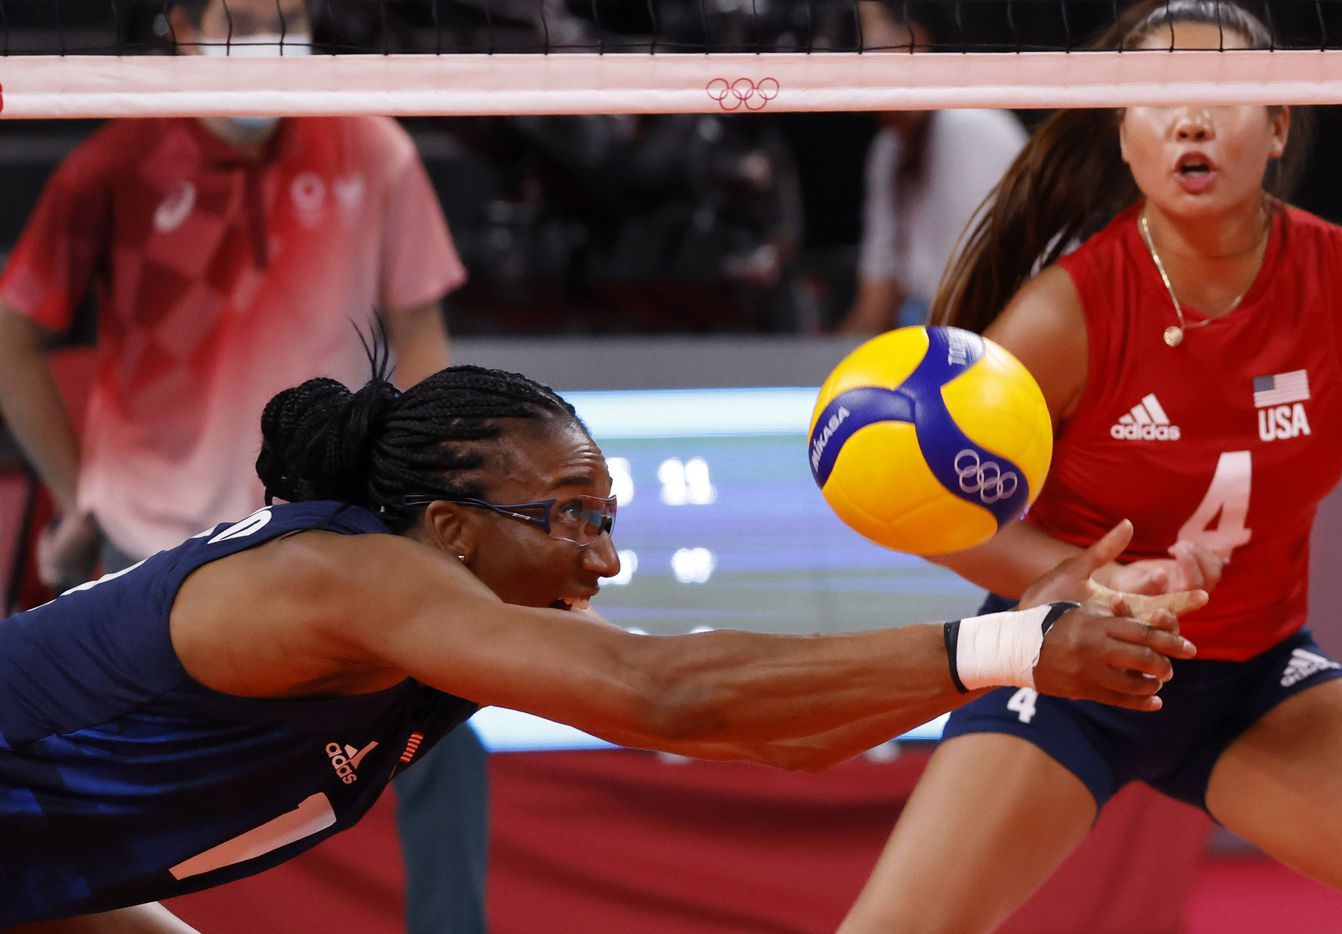 USA's Foluke Akinradewo (16) dives for the ball in a volleyball game against Argentina during the postponed 2020 Tokyo Olympics at Ariake Arena on Sunday, July 25, 2021, in Tokyo, Japan. USA defeated Argentina 3-0 (25-20, 25-19, 25-20). (Vernon Bryant/The Dallas Morning News)